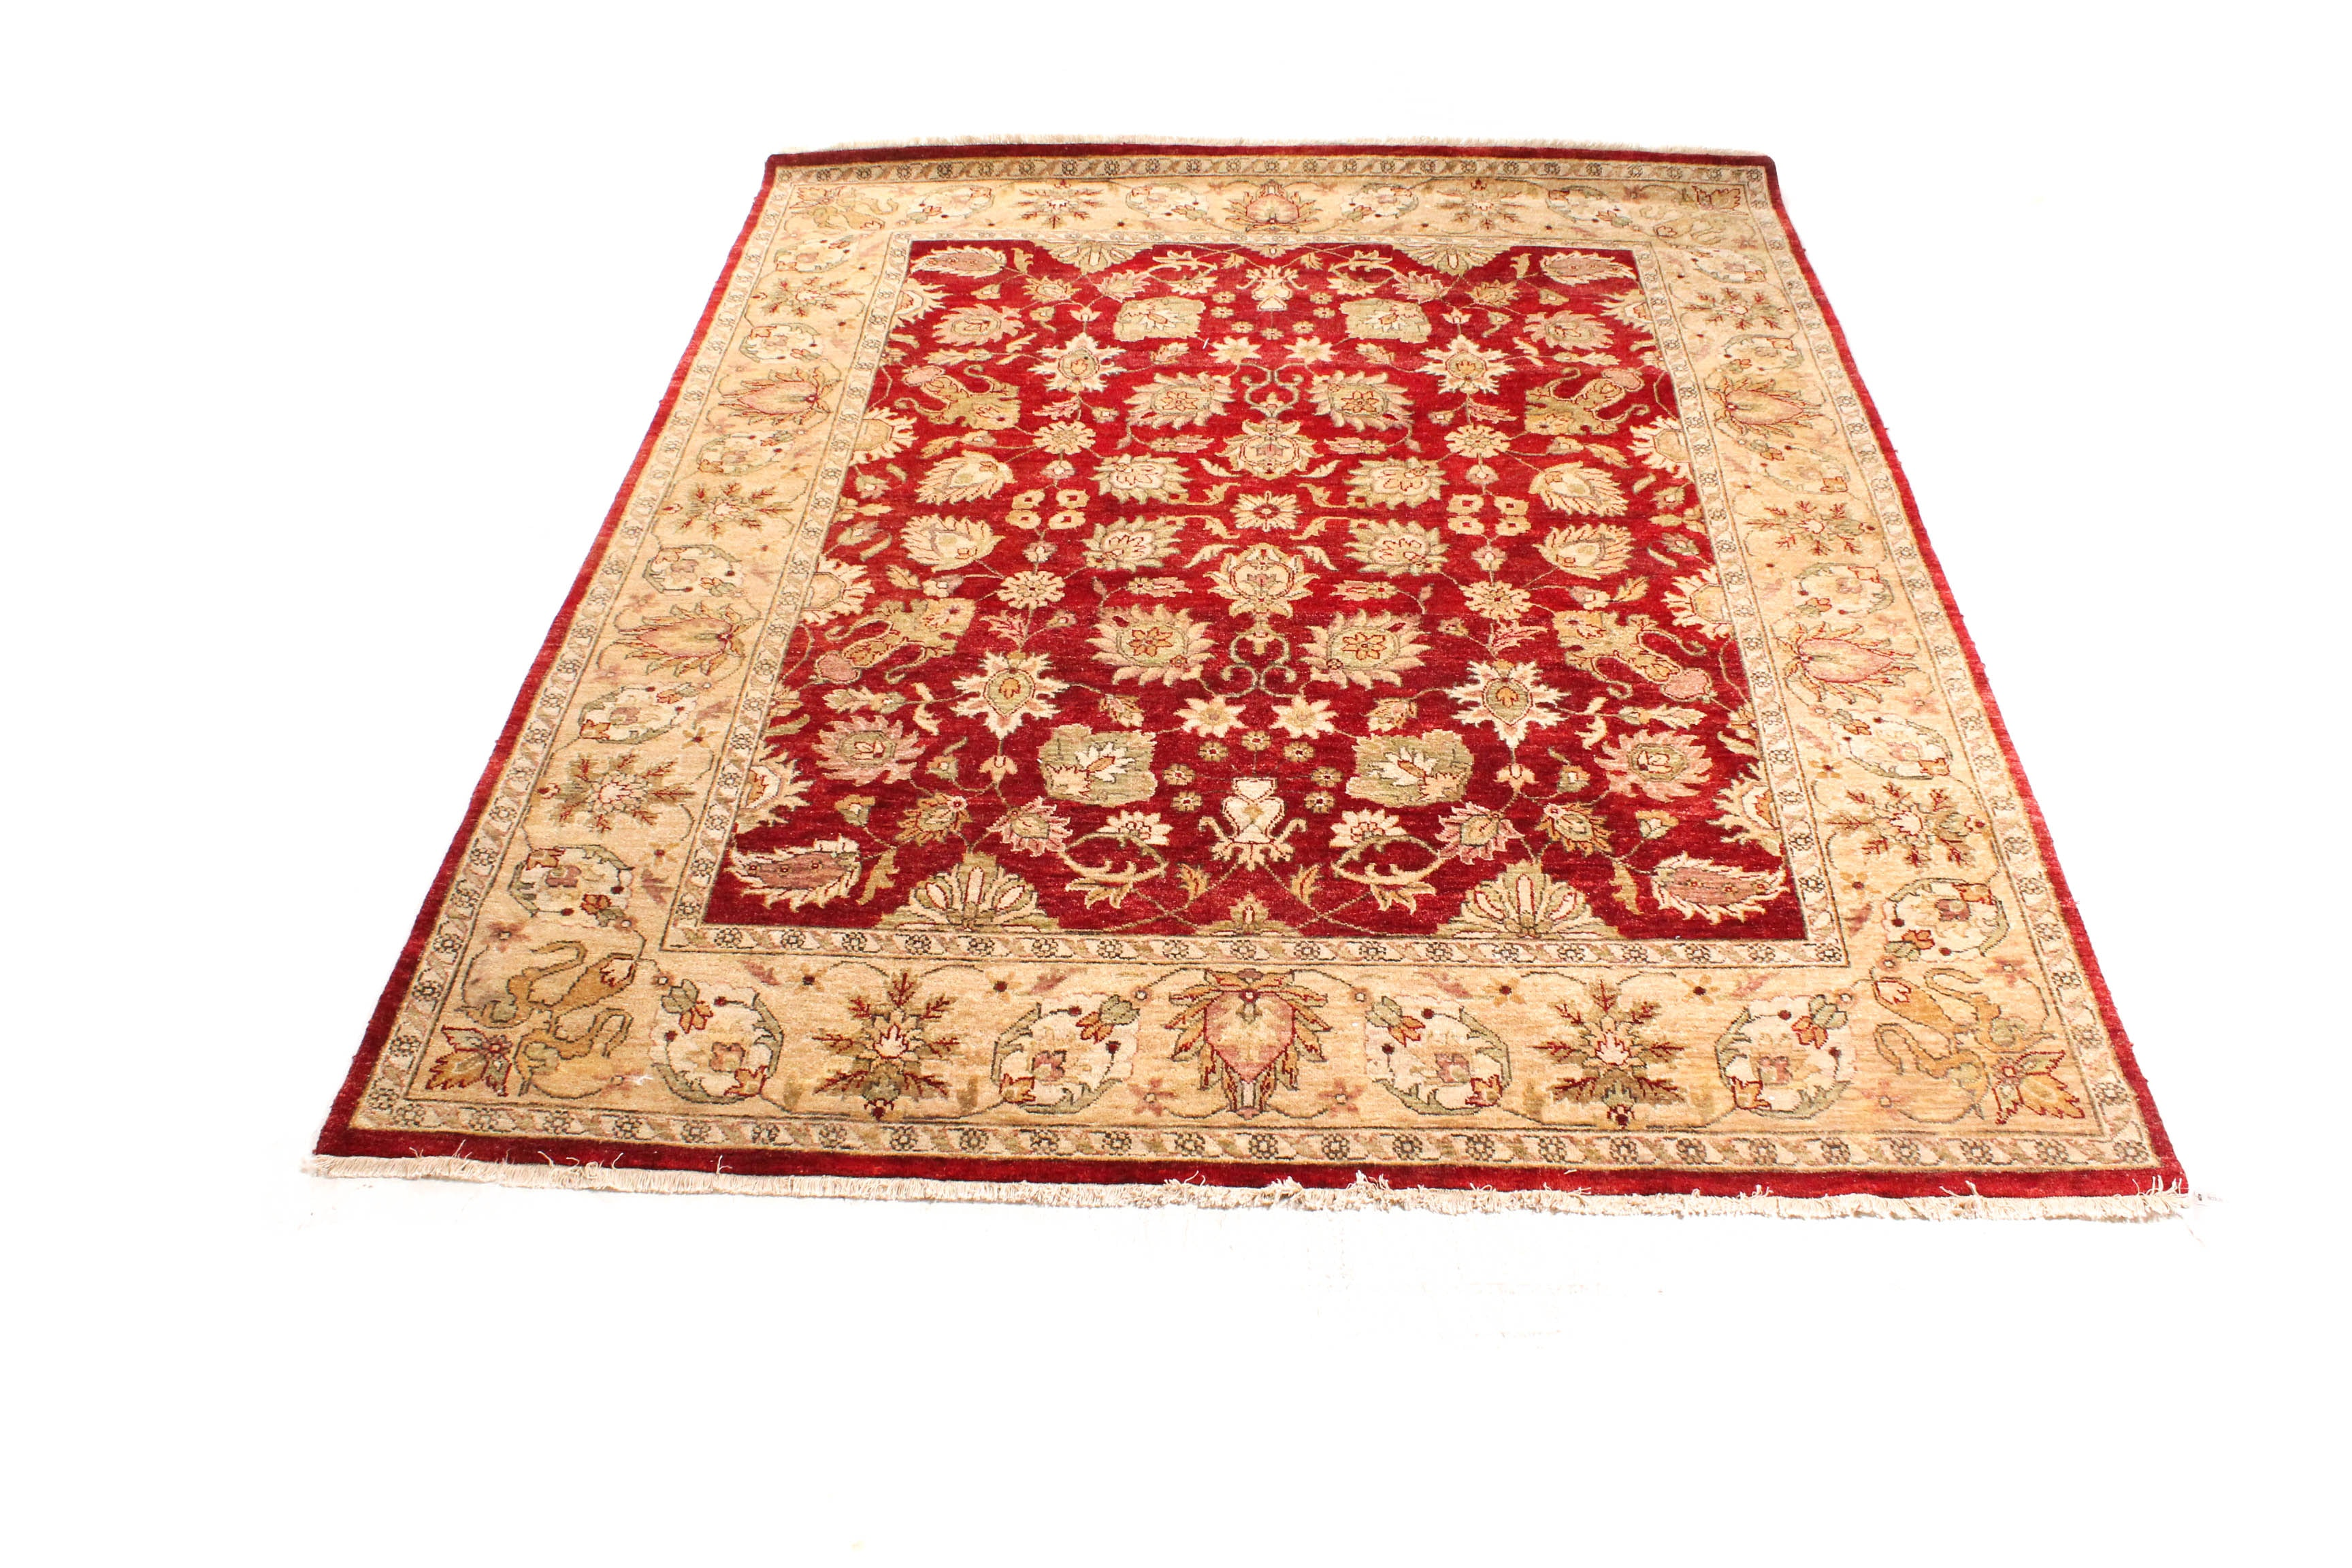 Hand-Knotted Indian Agra Style Area Rug